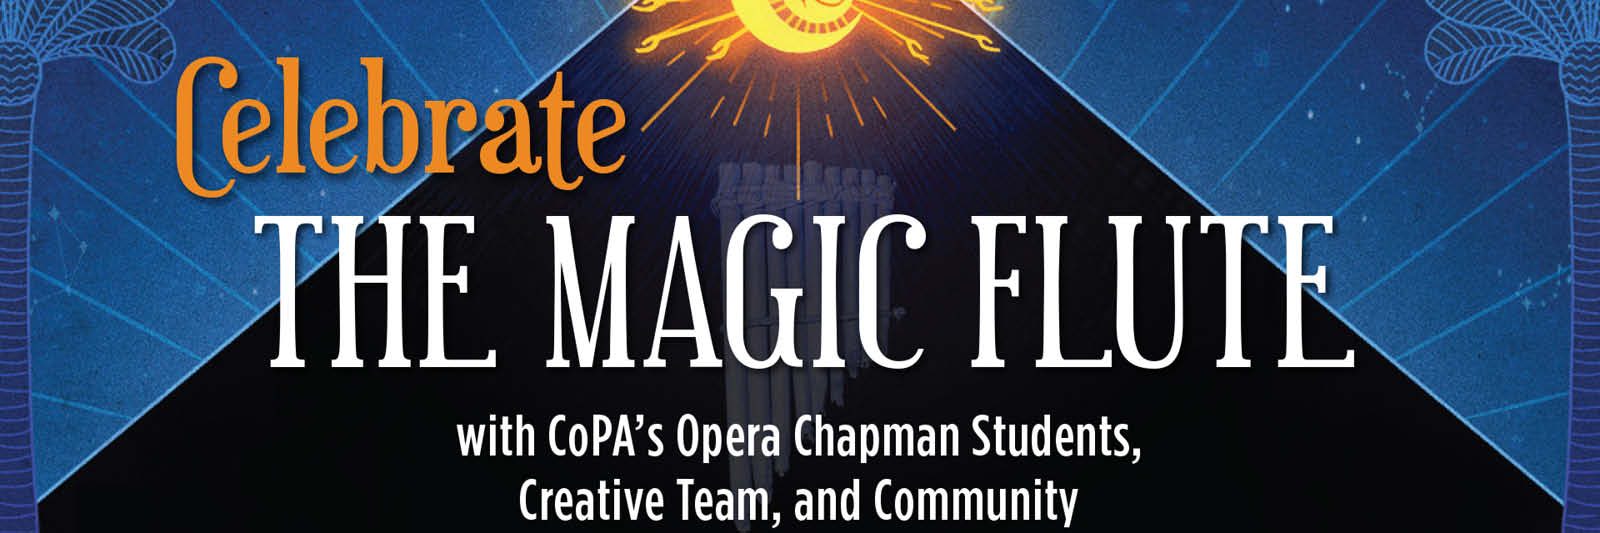 Celebrate The Magic Flute